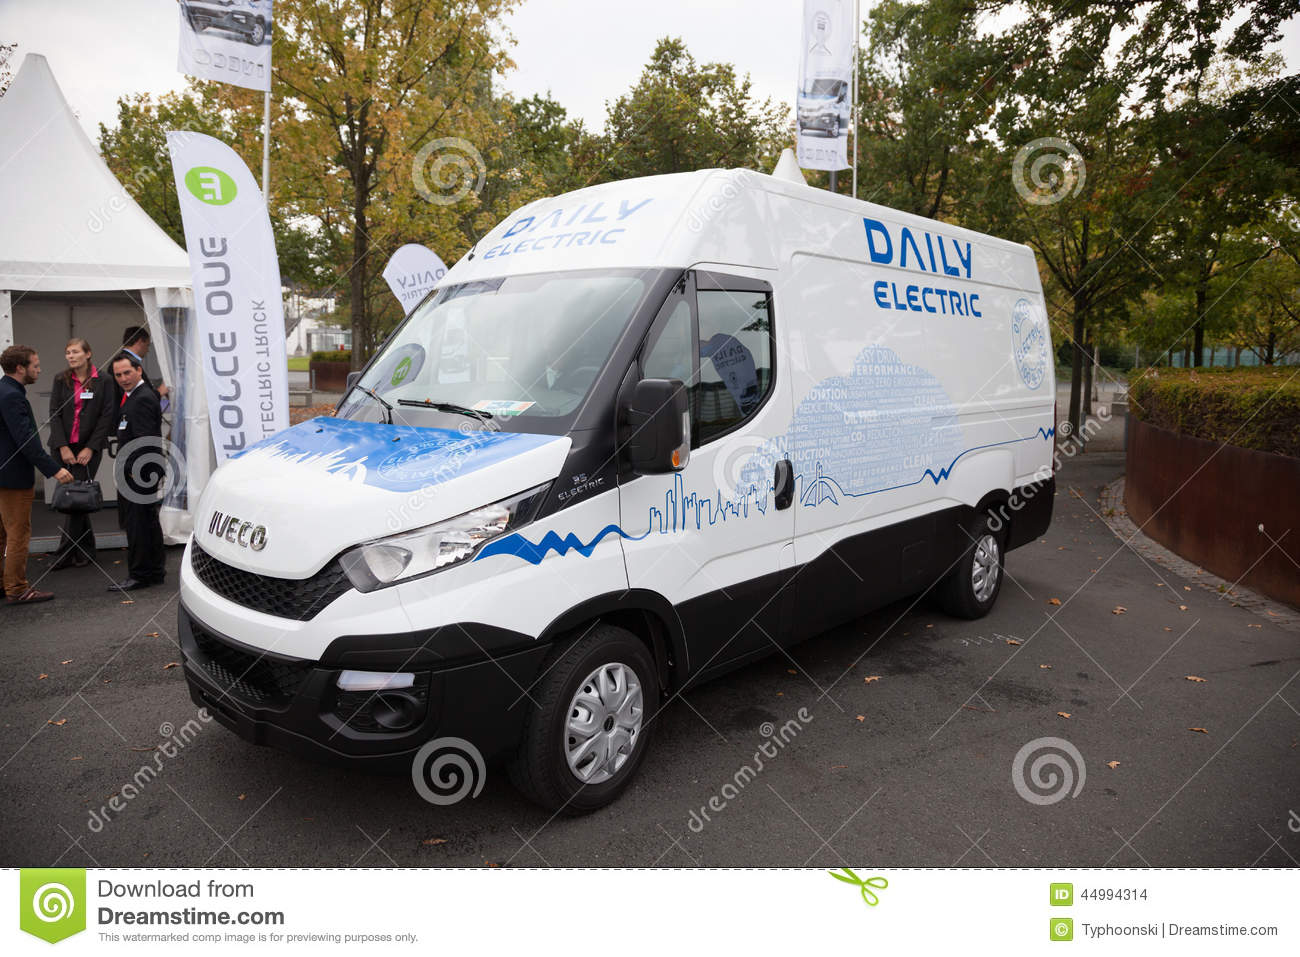 iveco daily electric transporter editorial stock image image of rh dreamstime com Iveco Daily 4x4 Iveco Daily 4x4